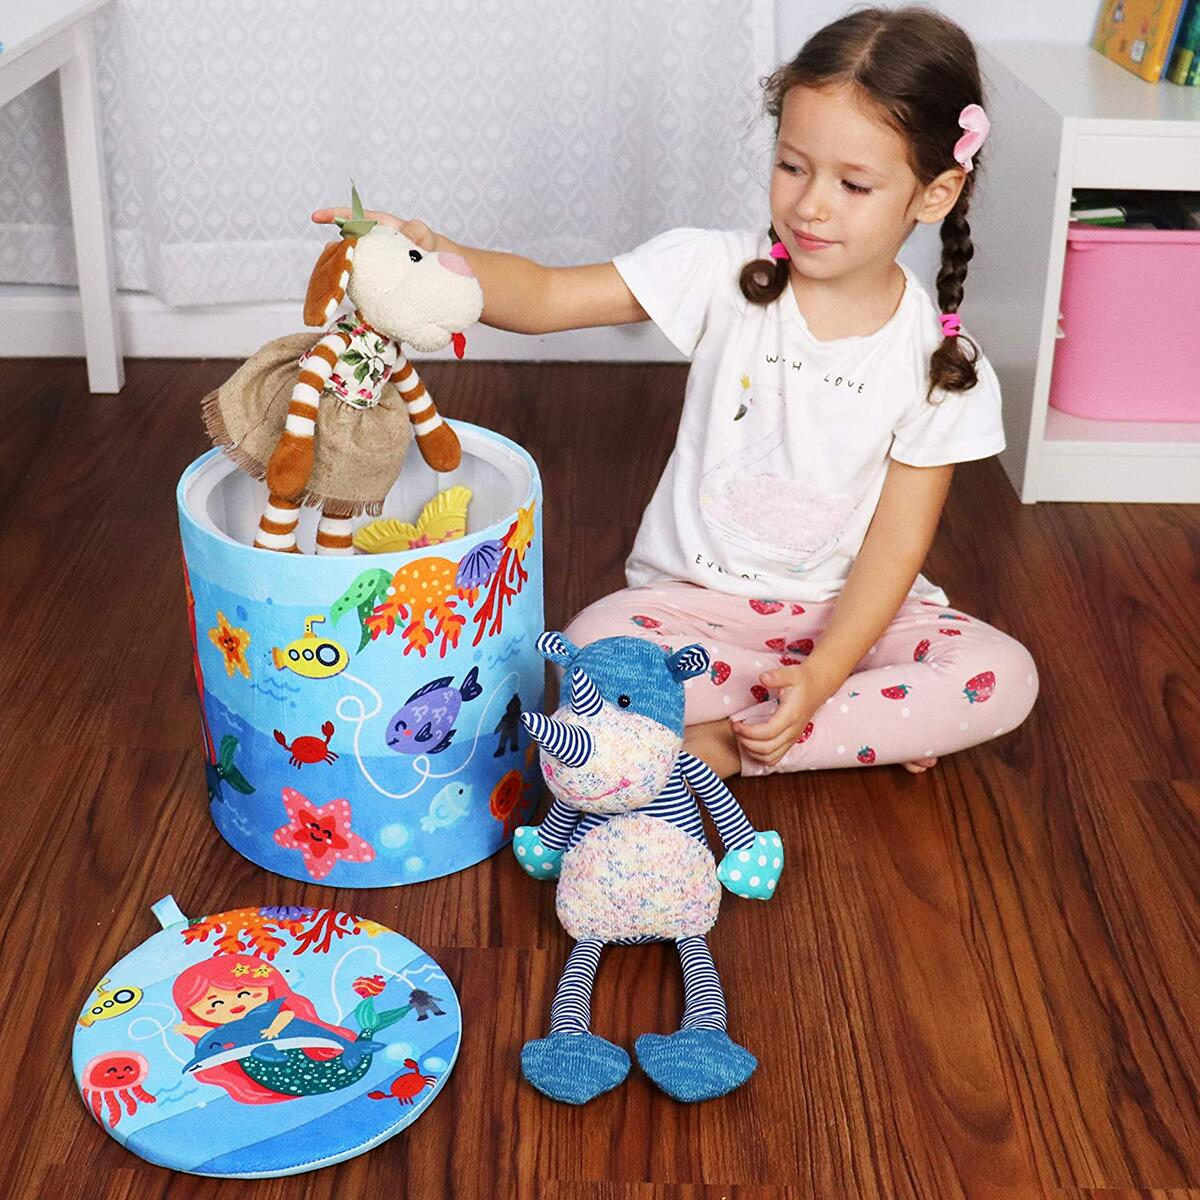 Kids Toy Storage Stool – Fun & Convenient Toy Chest for Modern Parents and Playful Children